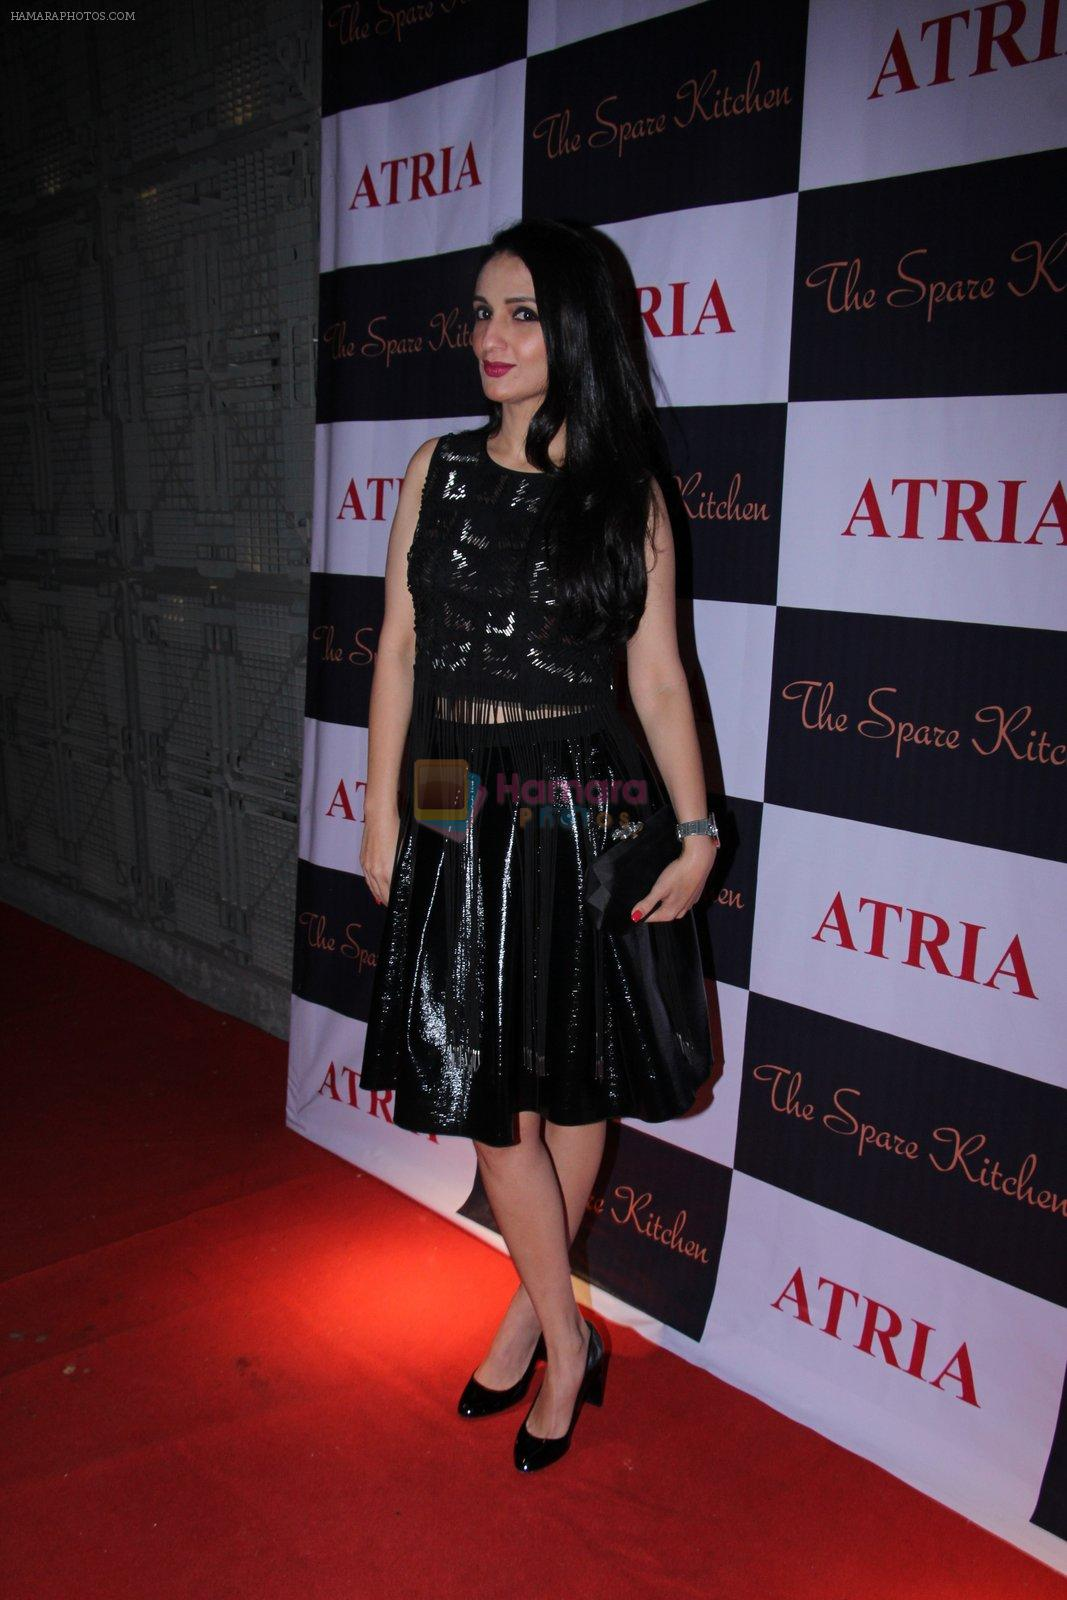 Anu Dewan at Ritika and Kunal Vardhan's Spare Kitchen launch in Atria Mall on 25th nov 2016